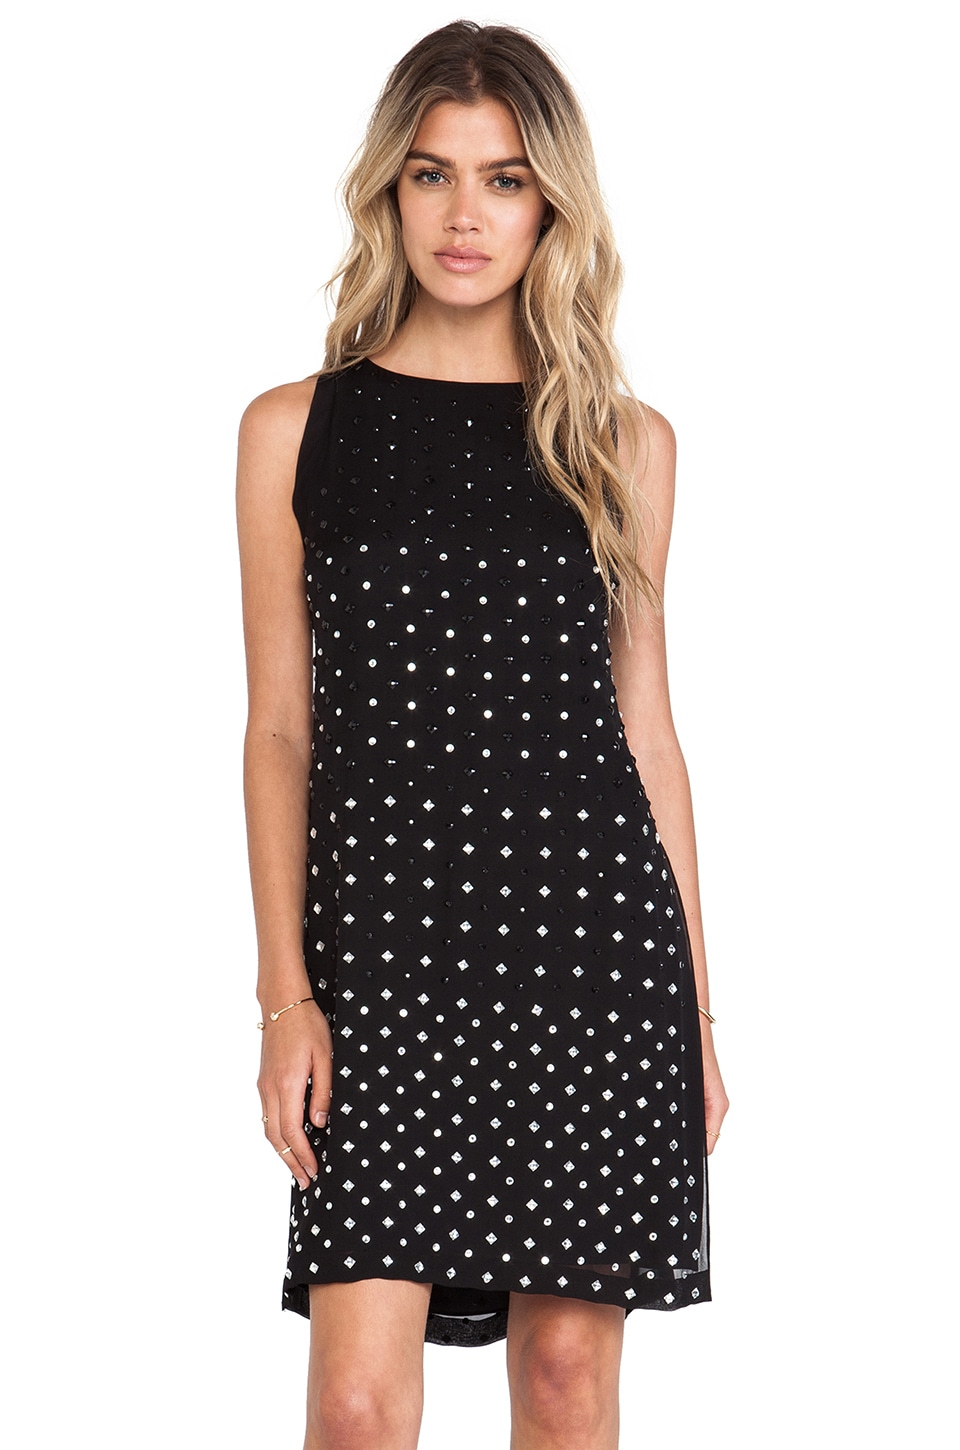 Diane von Furstenberg Ella Dress in Black